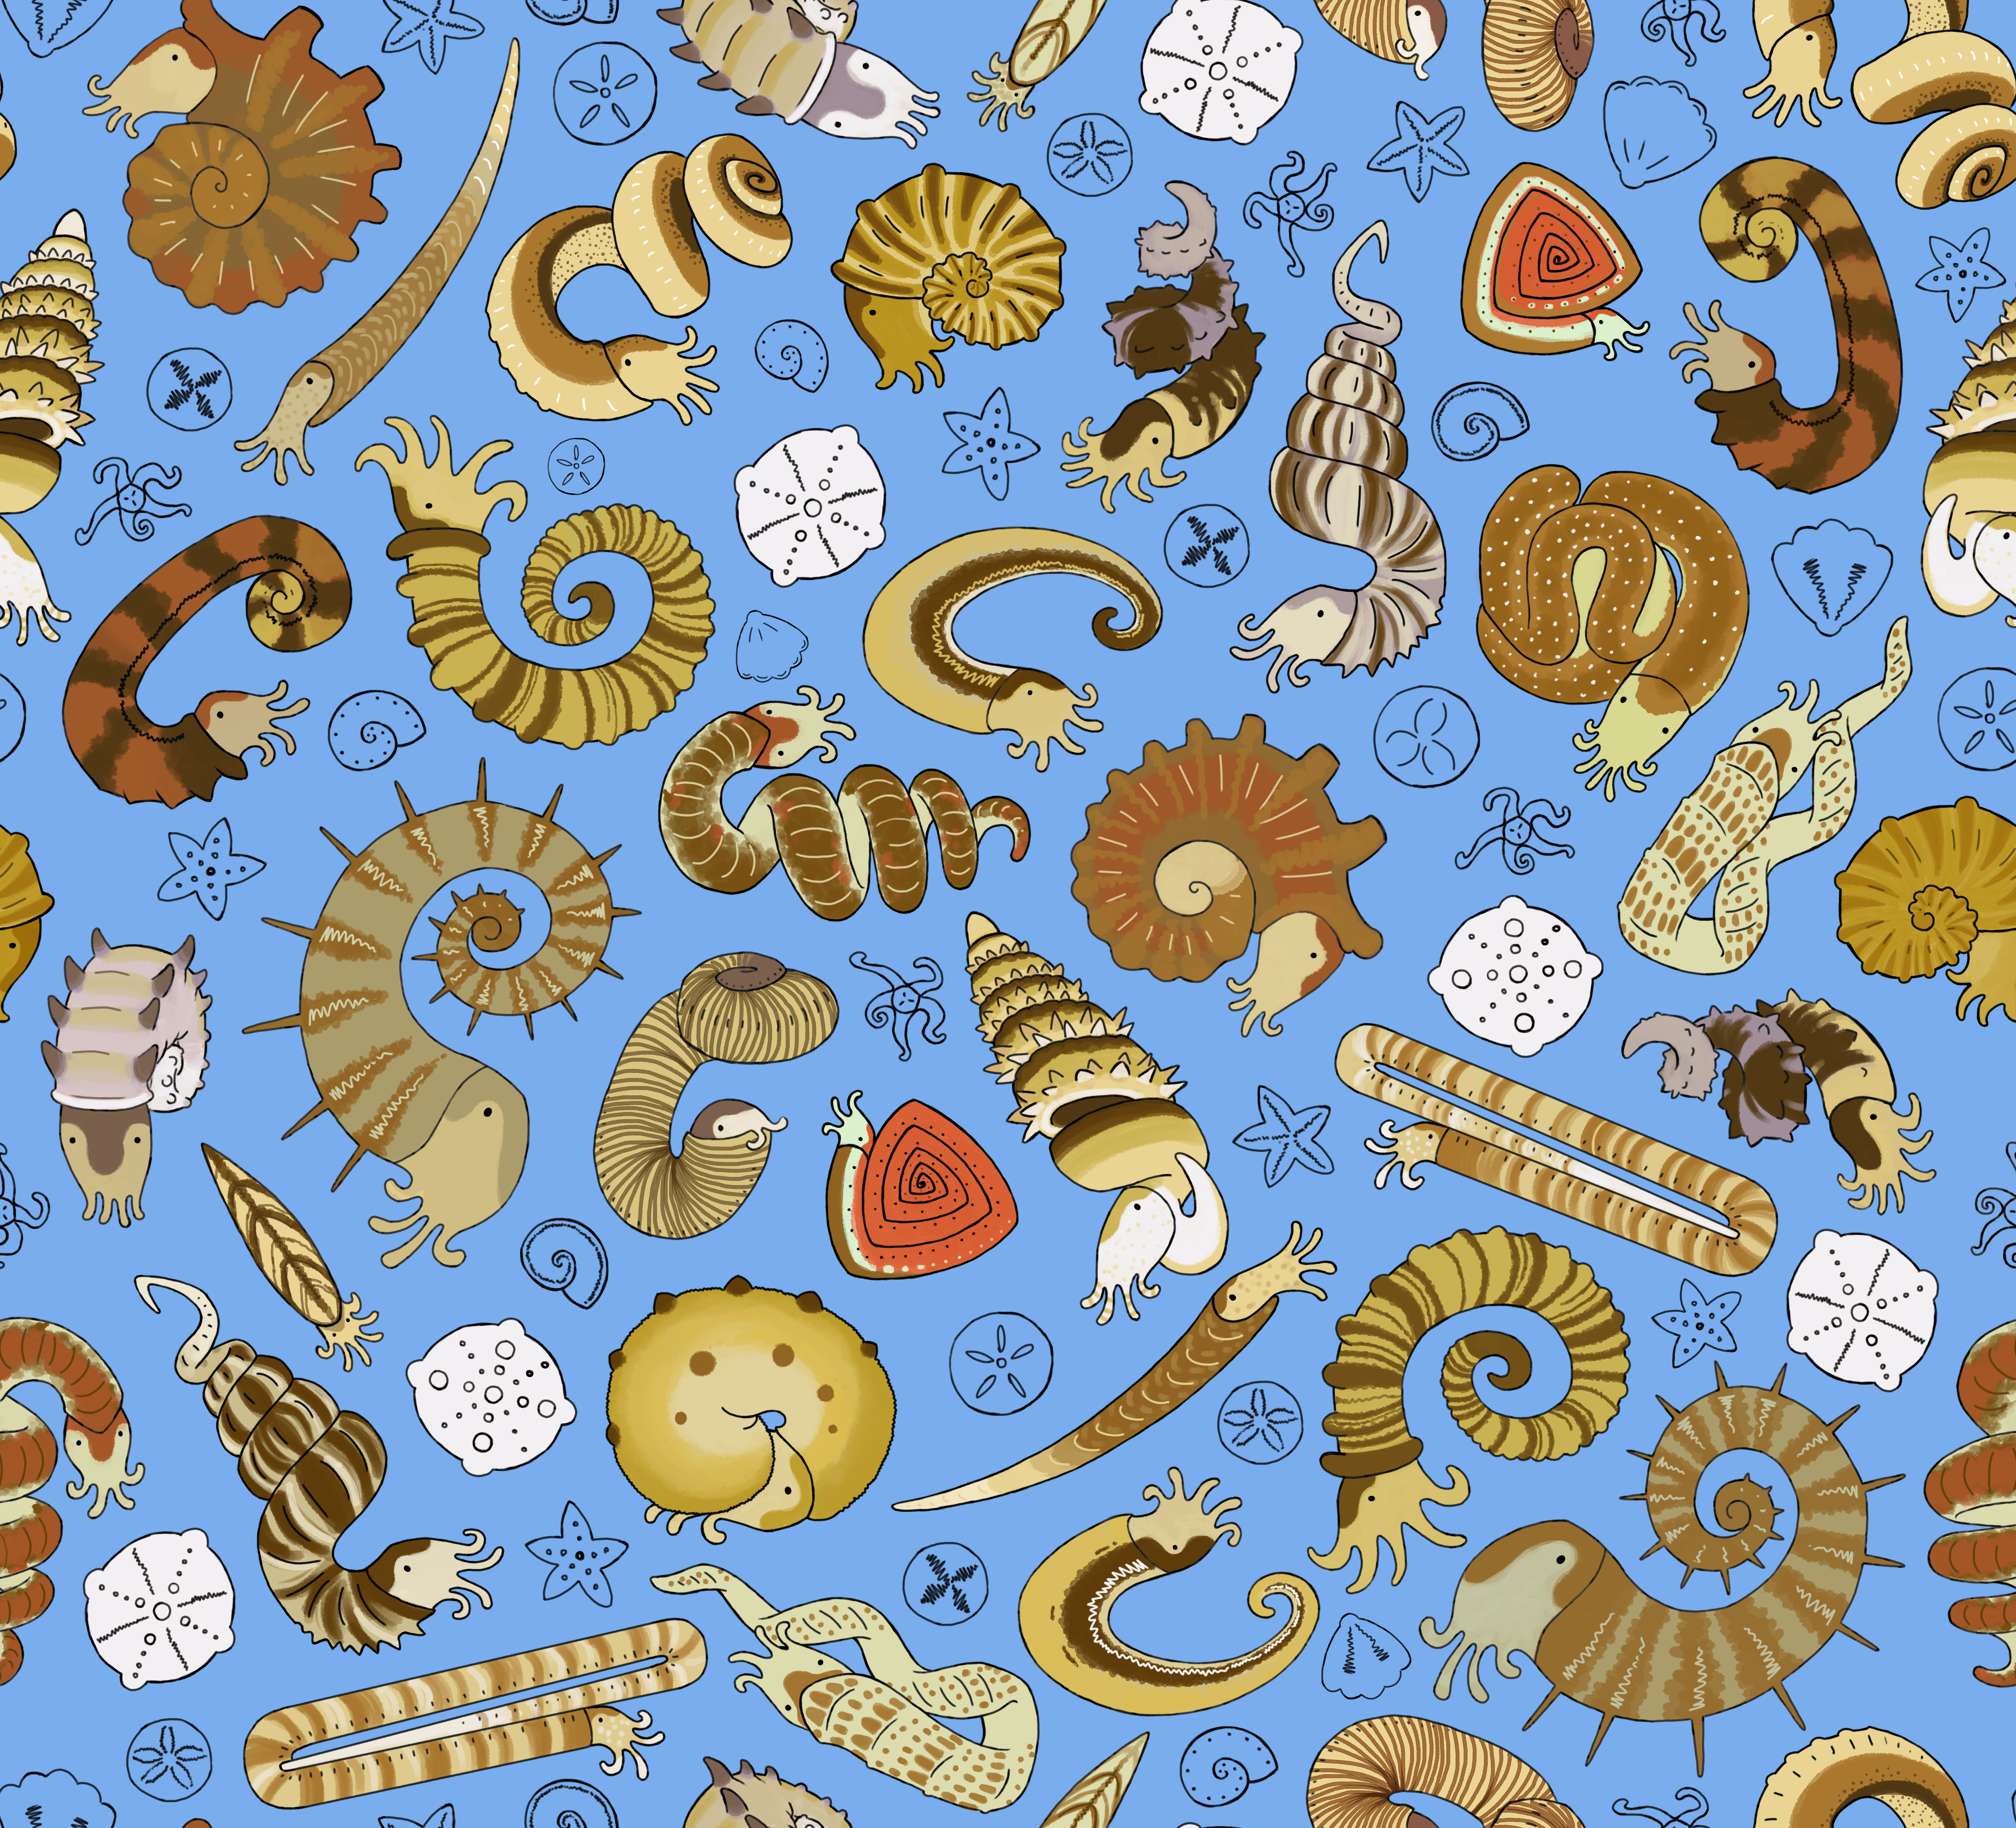 Ammonite love pattern_natural_redbubble.png